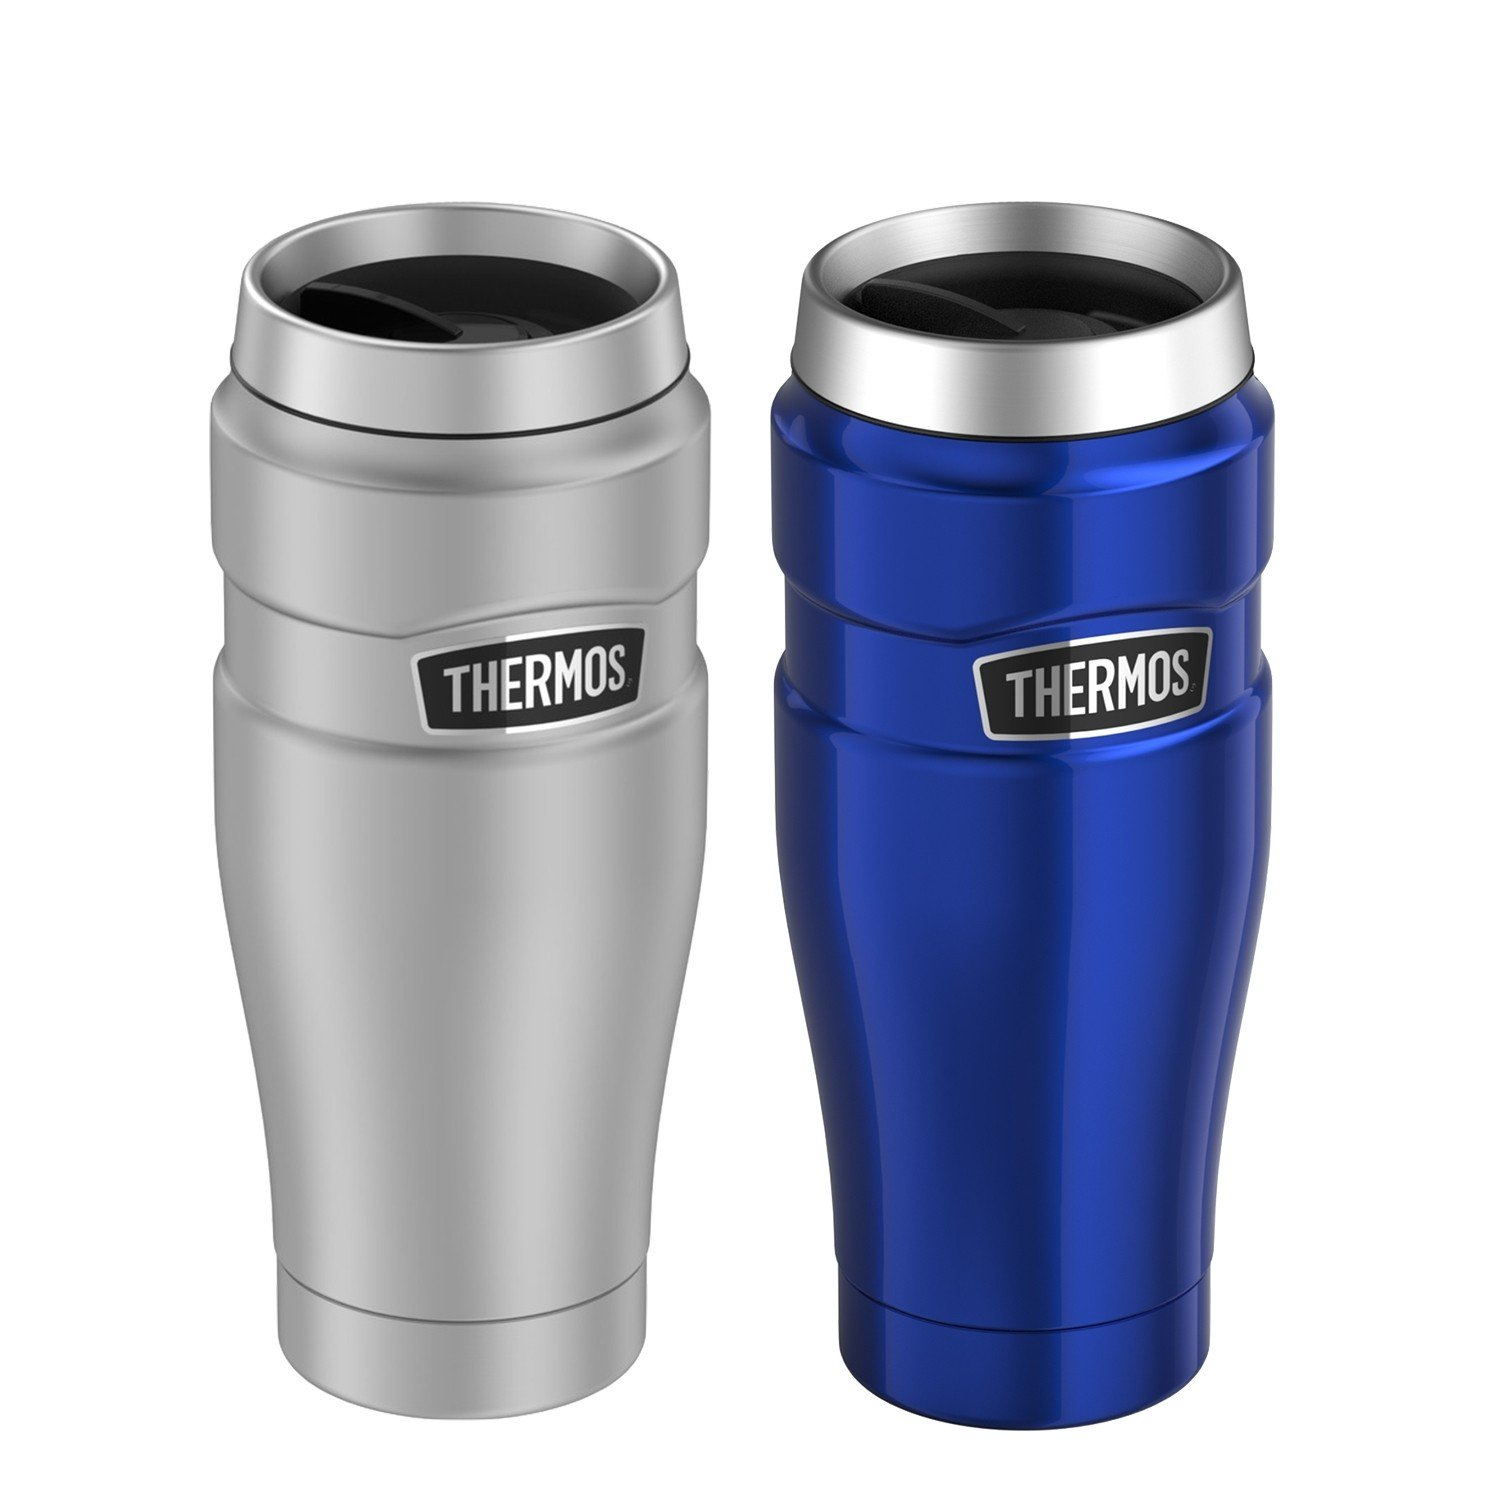 STAINLESS KING VACUUM INSULATED STAINLESS STEEL TRAVEL TUMBLER 16OZ PAIR